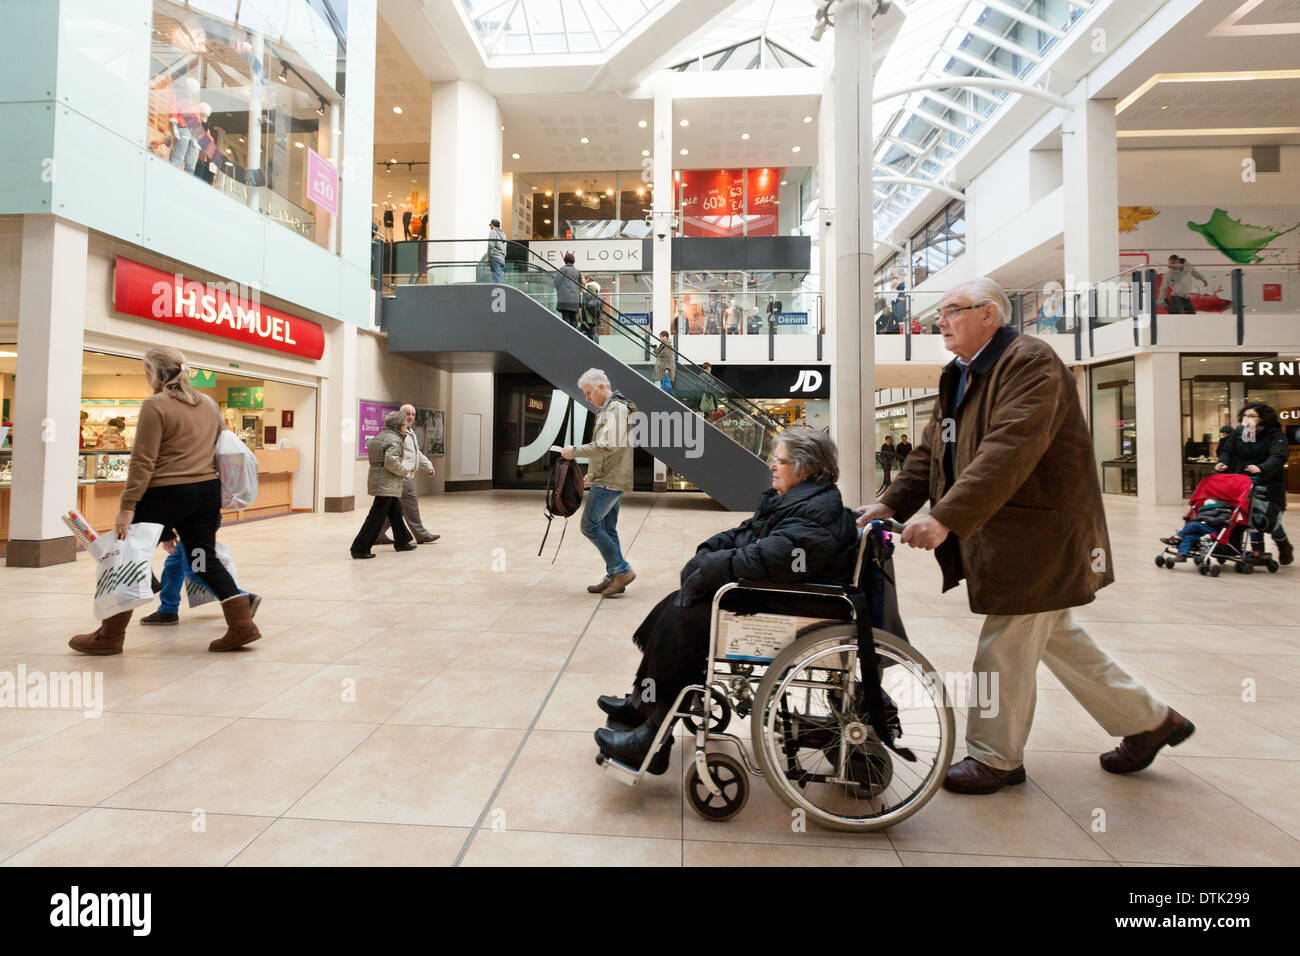 Disabled access to shops - An elderly couple with a disabled person in a wheelchair in a shopping mall, England UK - Stock Image